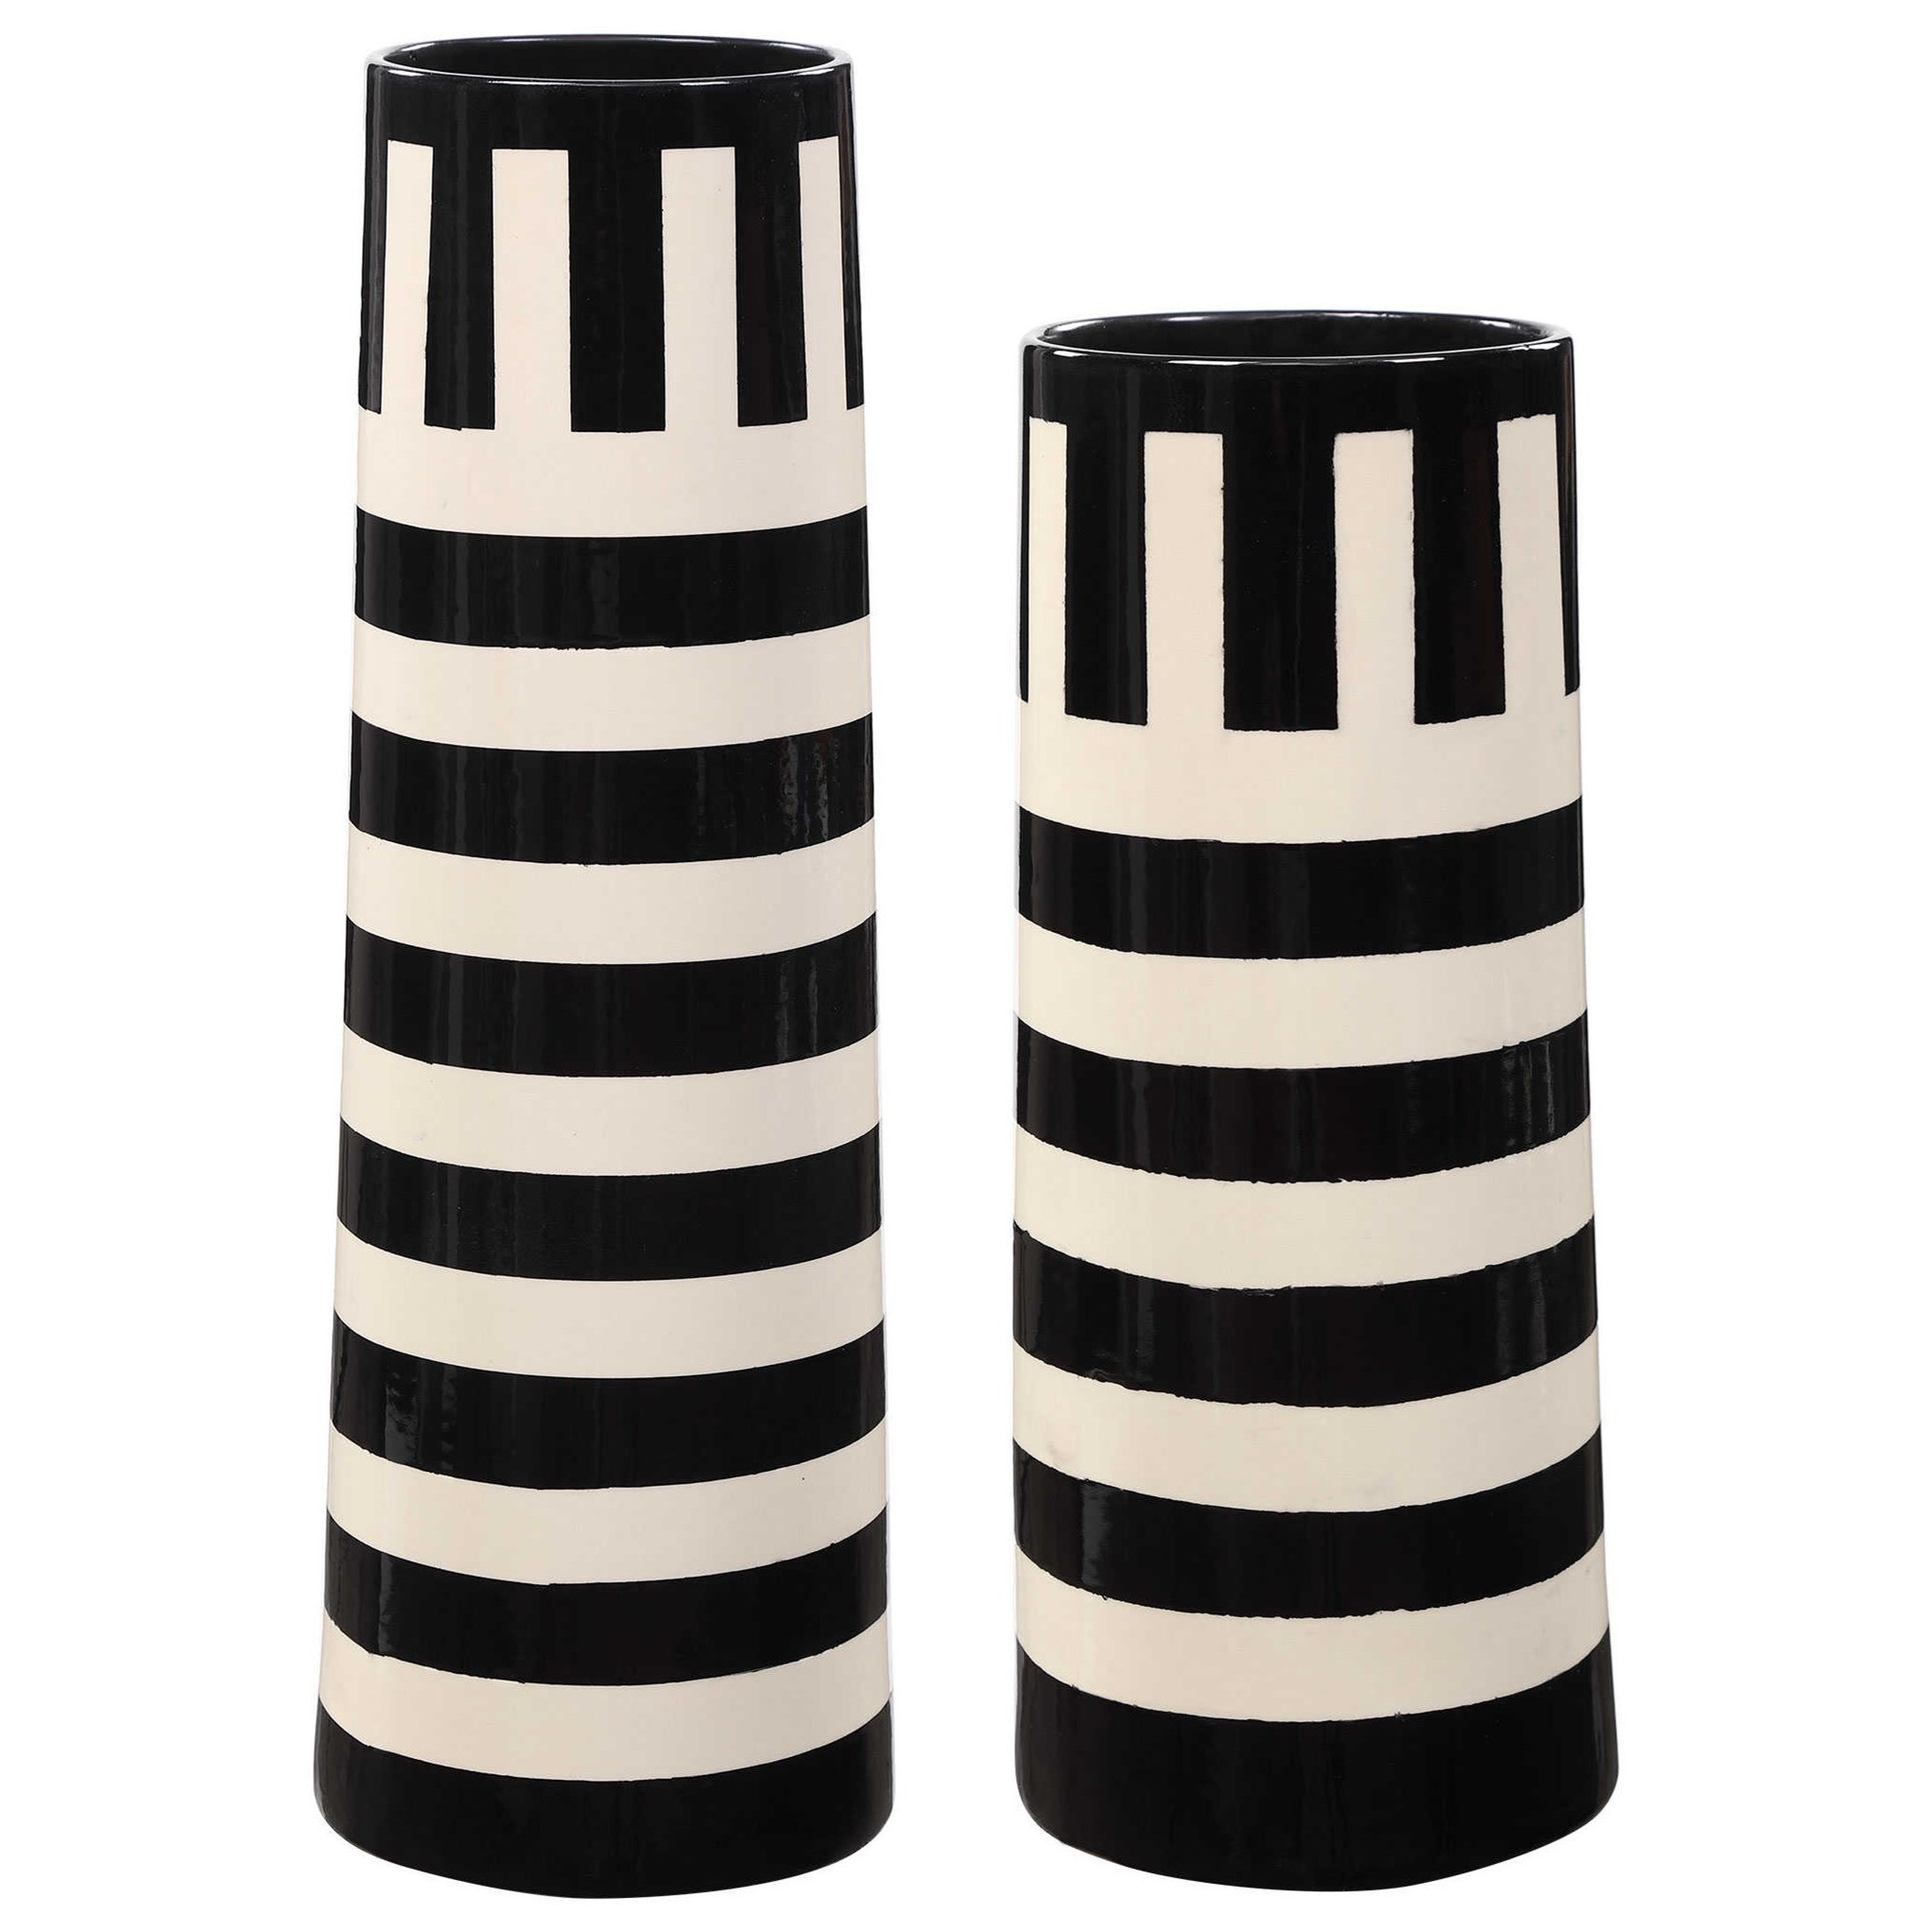 Black & White Vases, S/2